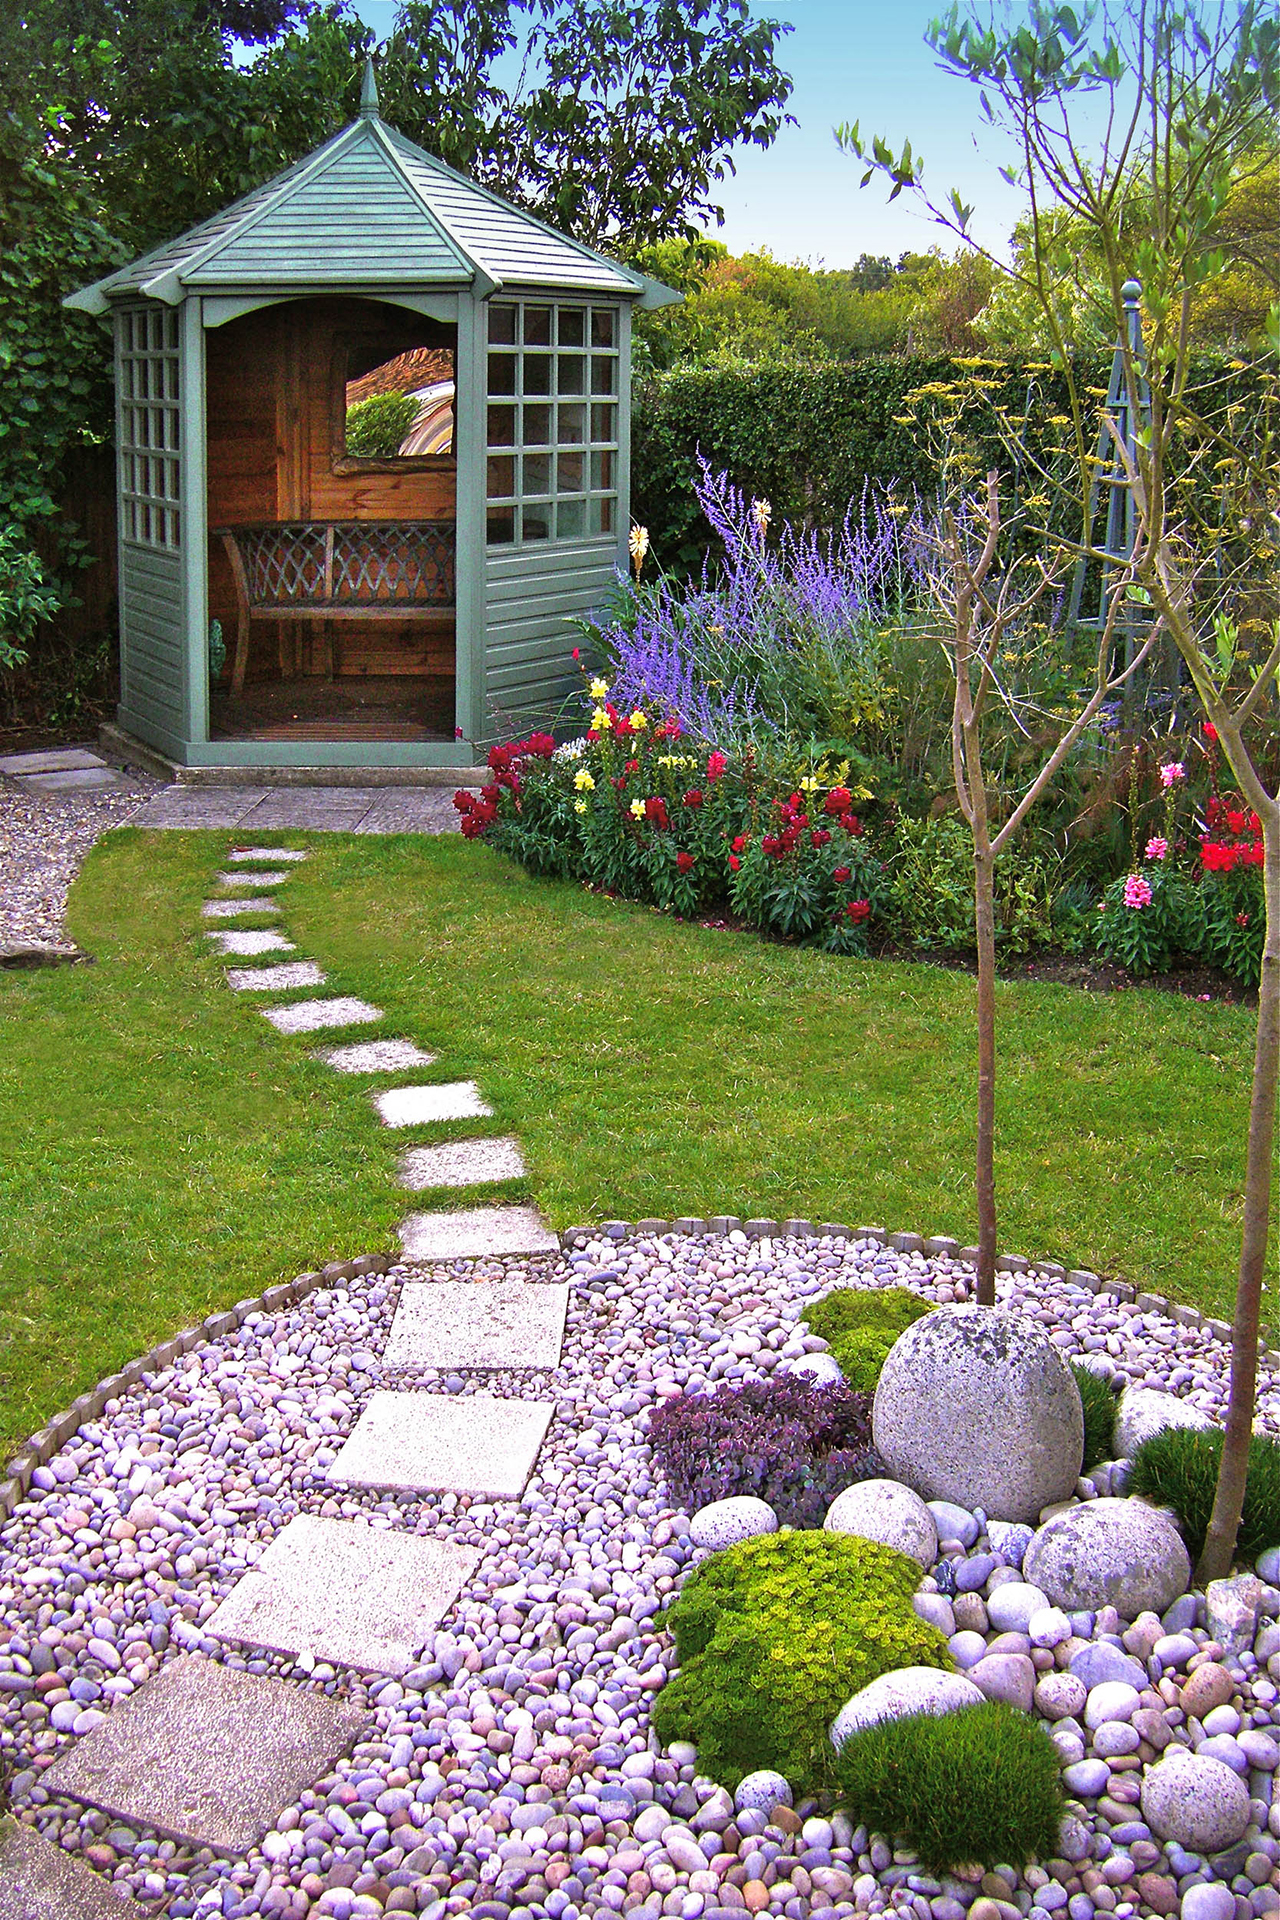 50 Best Backyard Landscaping Ideas and Designs in 2020 on Back Patio Landscape Ideas id=42765